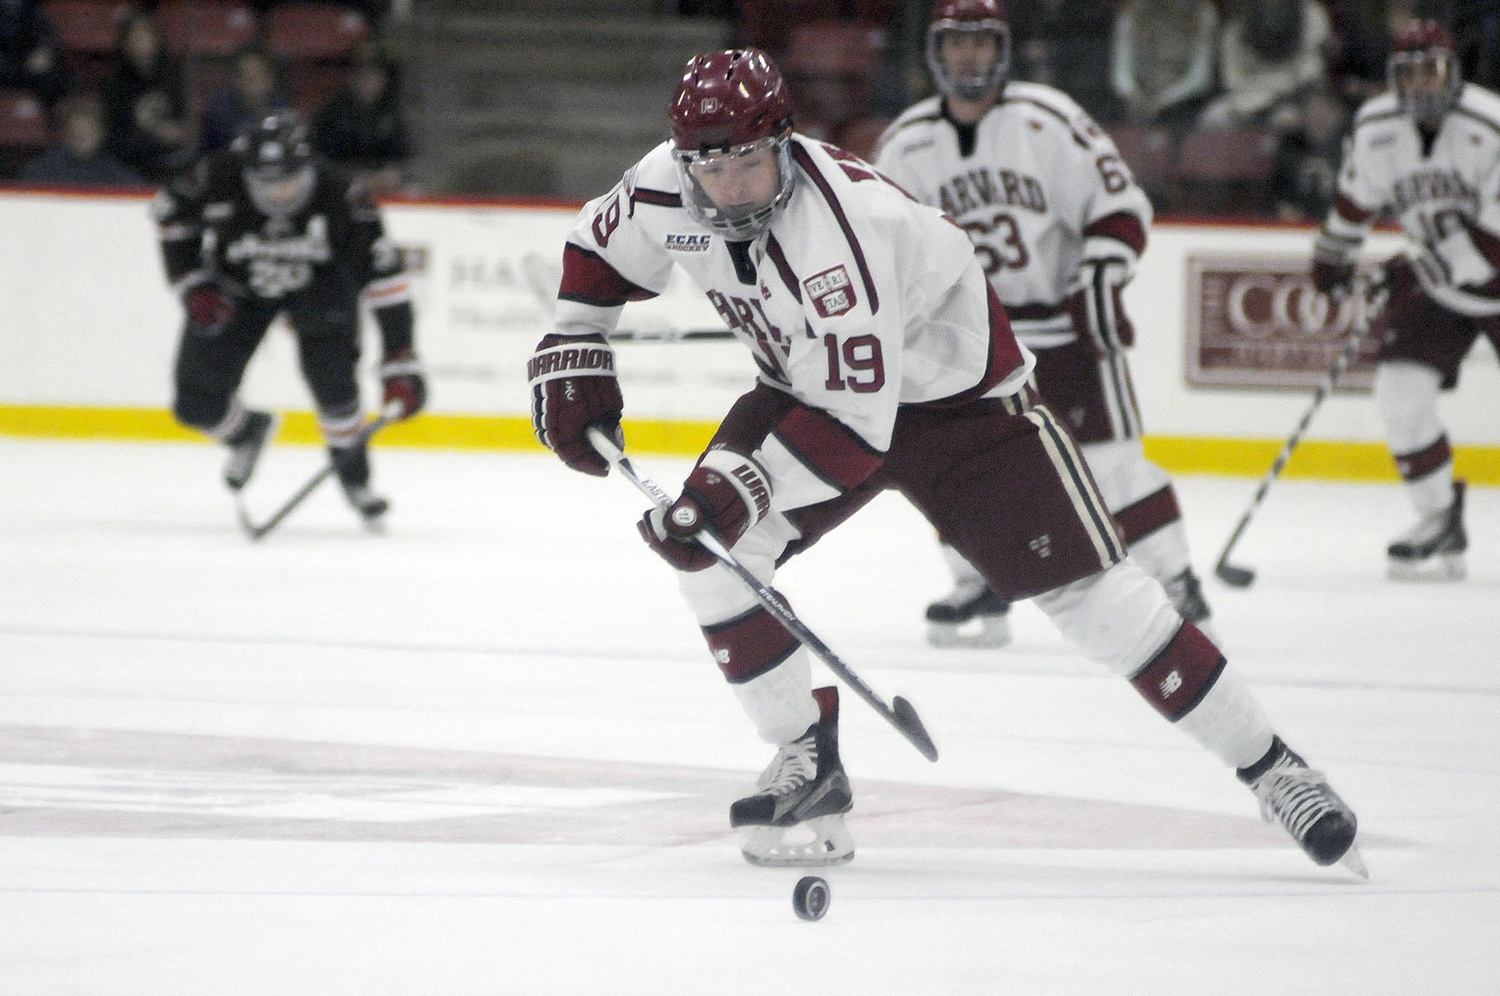 Nov. 7, 2015: In a 5-2 home win over Brown, Vesey scored twice, including on this shorthanded breakaway in the first period.